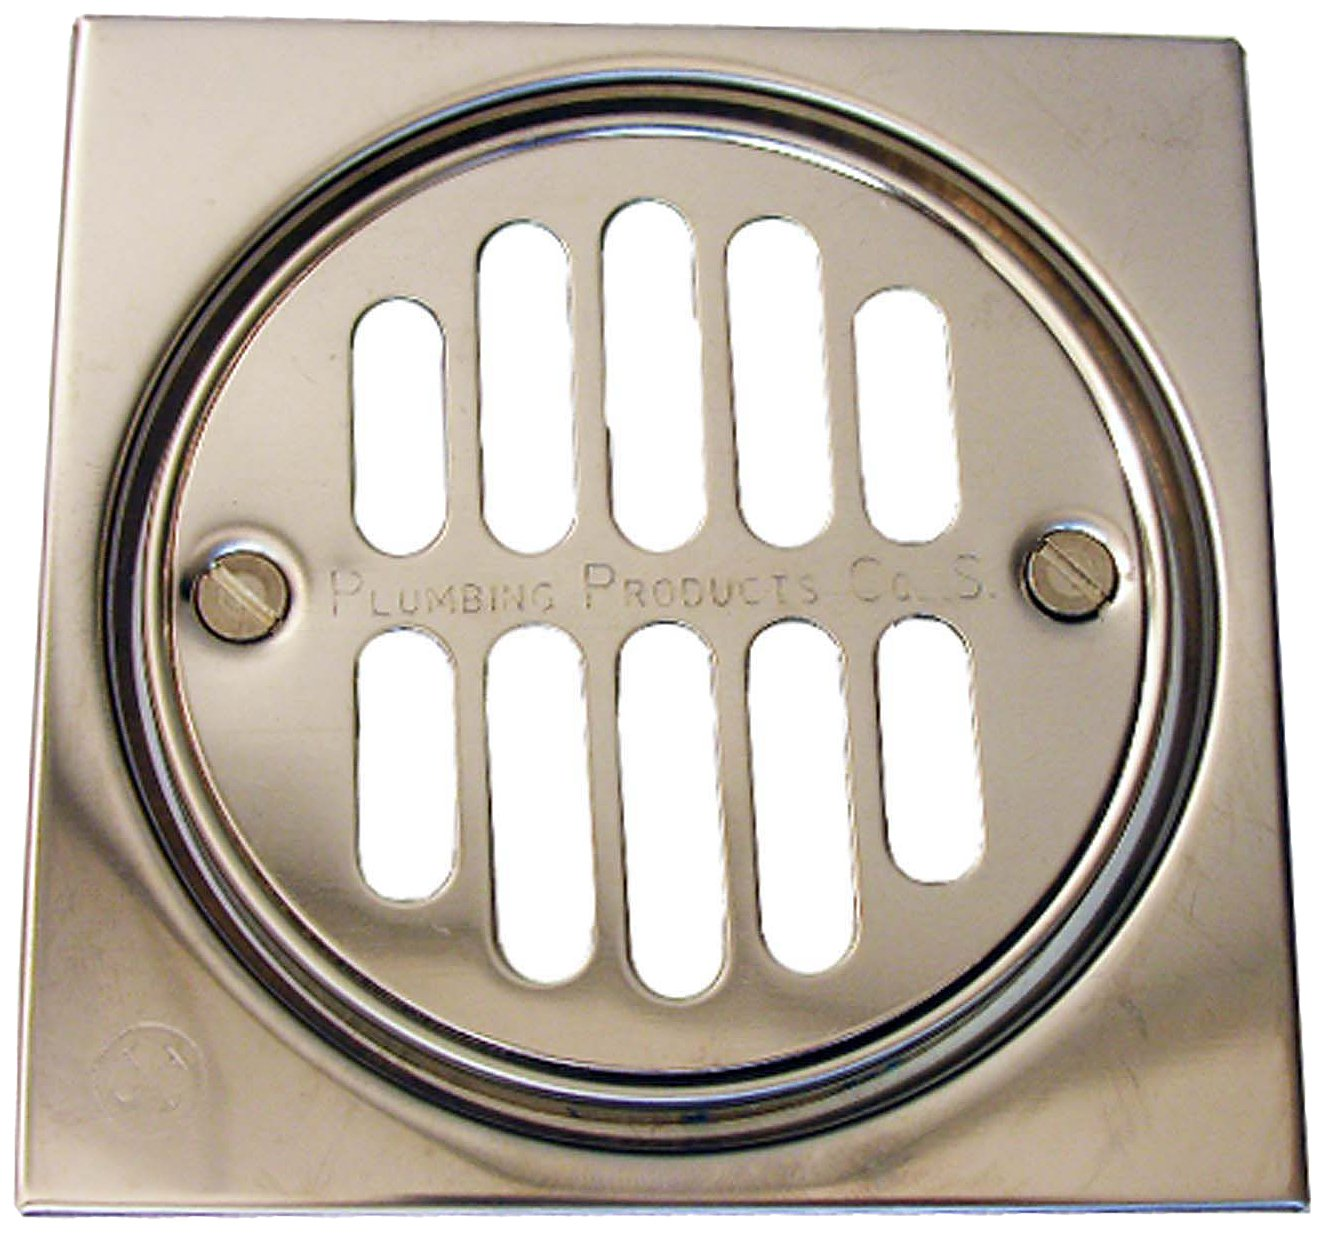 LASCO 03 1245 Shower Drain Trim Kit With 3 3/8 Inch Grid Strainer And 2 1/2  Inch Screw Holes, 4 Inch, Chrome Plated     Amazon.com